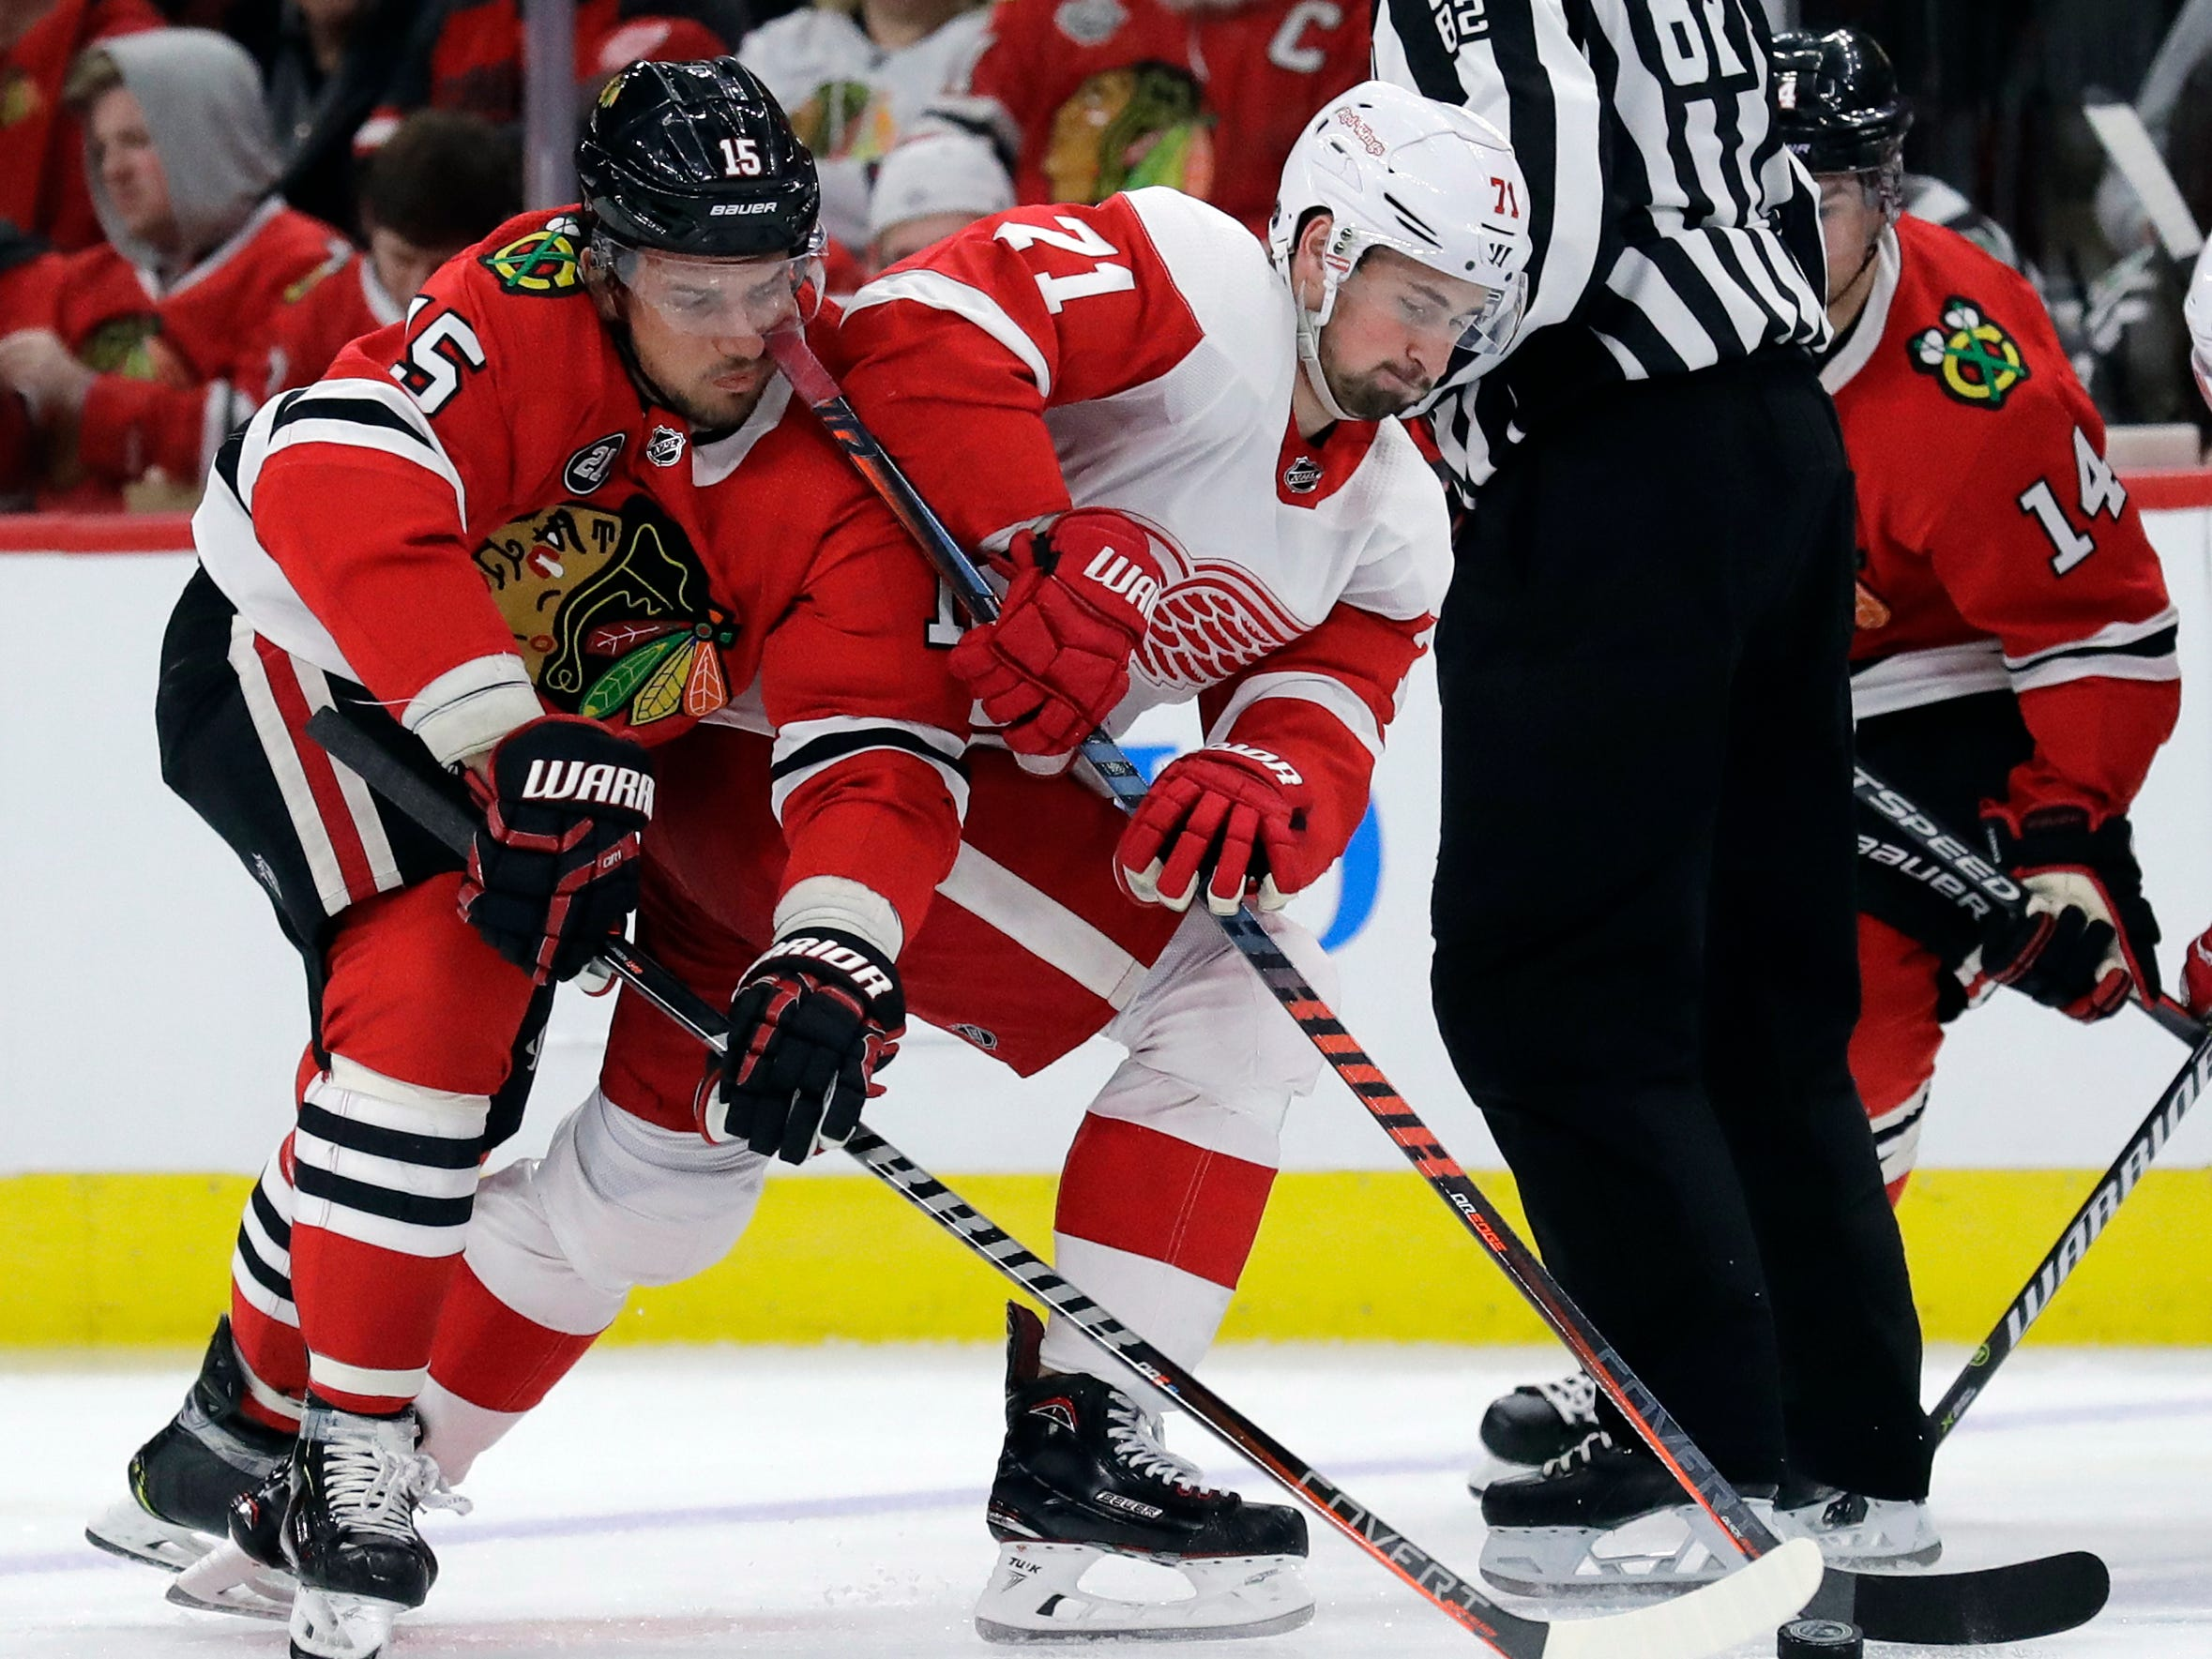 Detroit Red Wings center Dylan Larkin (71) battles for the puck against Chicago Blackhawks center Artem Anisimov (15) during the second period.